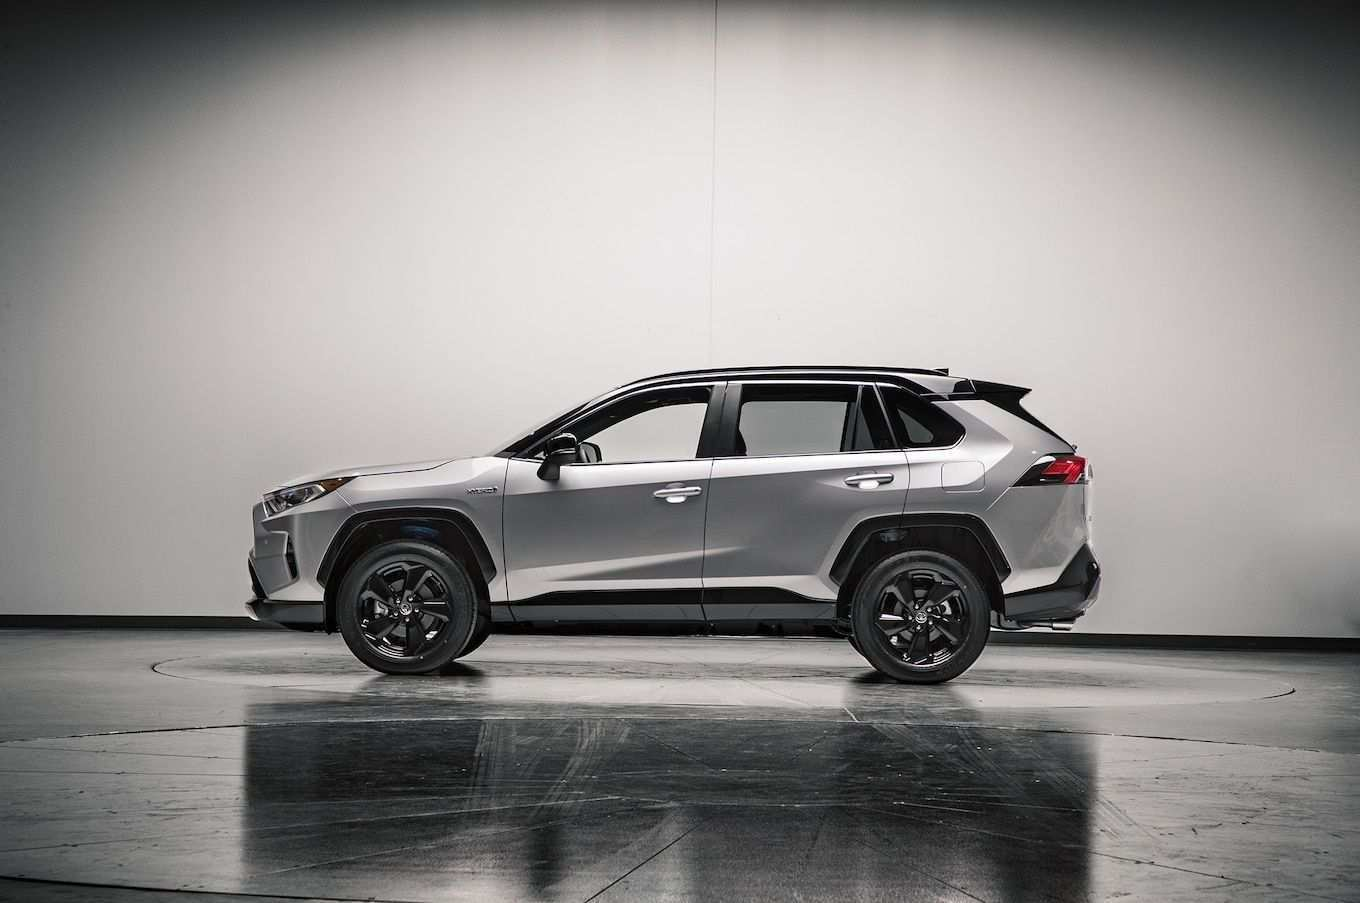 56 New The Jeep Hybrid 2019 Release Date Overview by The Jeep Hybrid 2019 Release Date